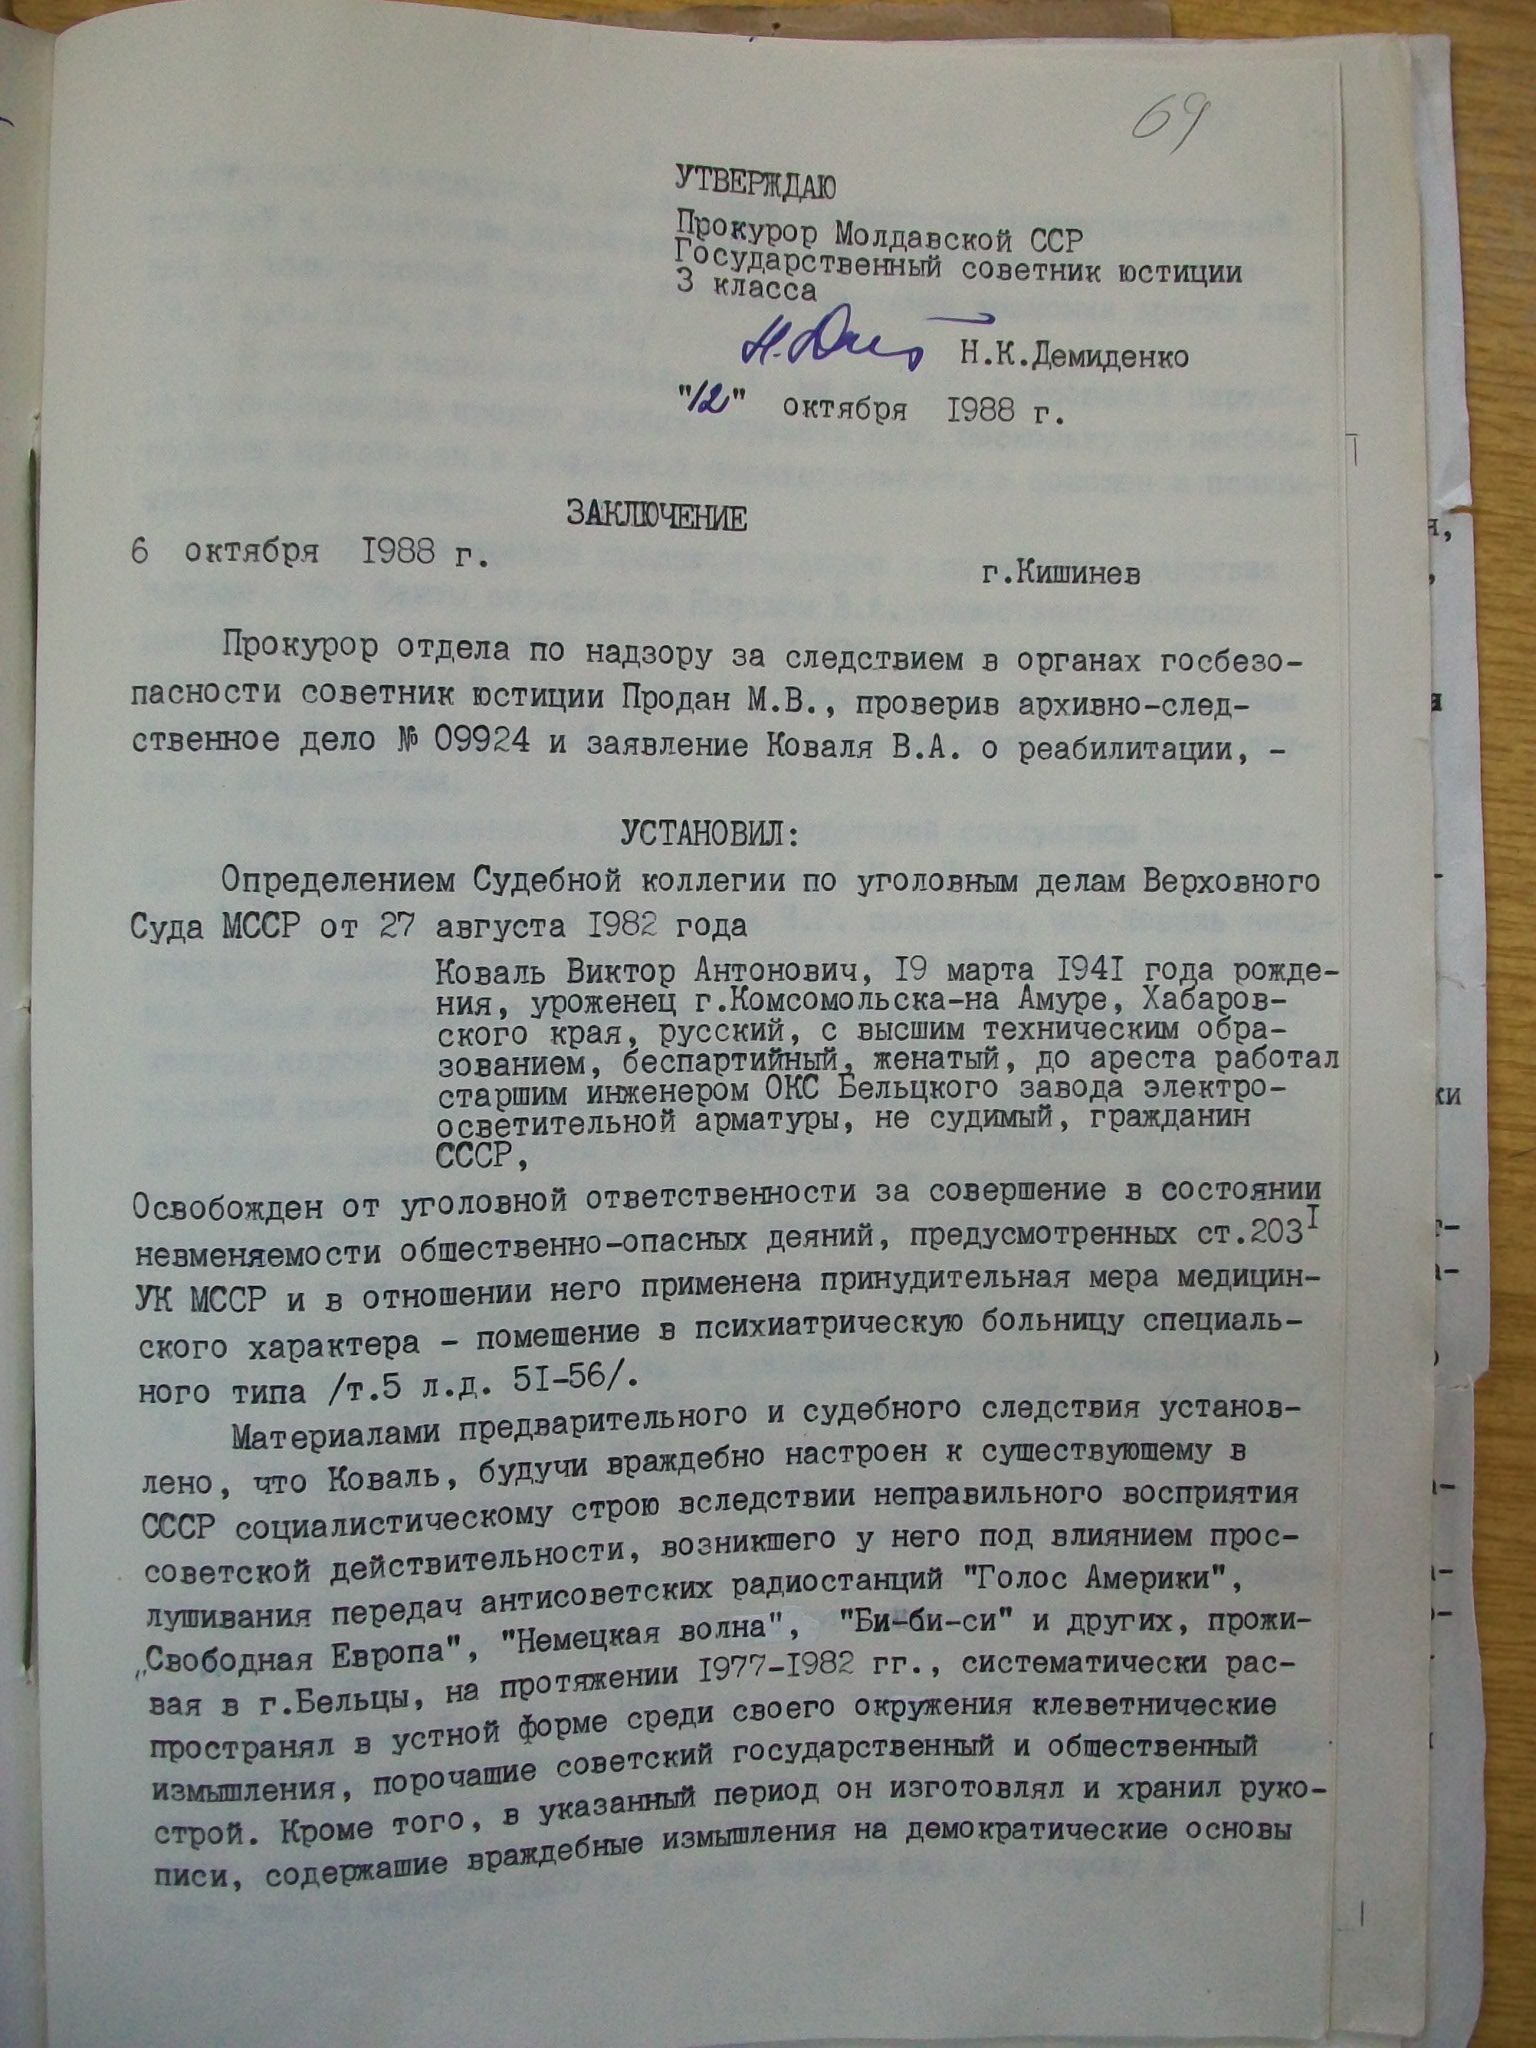 First page of the Resolution of the General Prosecutor's Office of the Moldavian SSR concerning Viktor Koval's petition